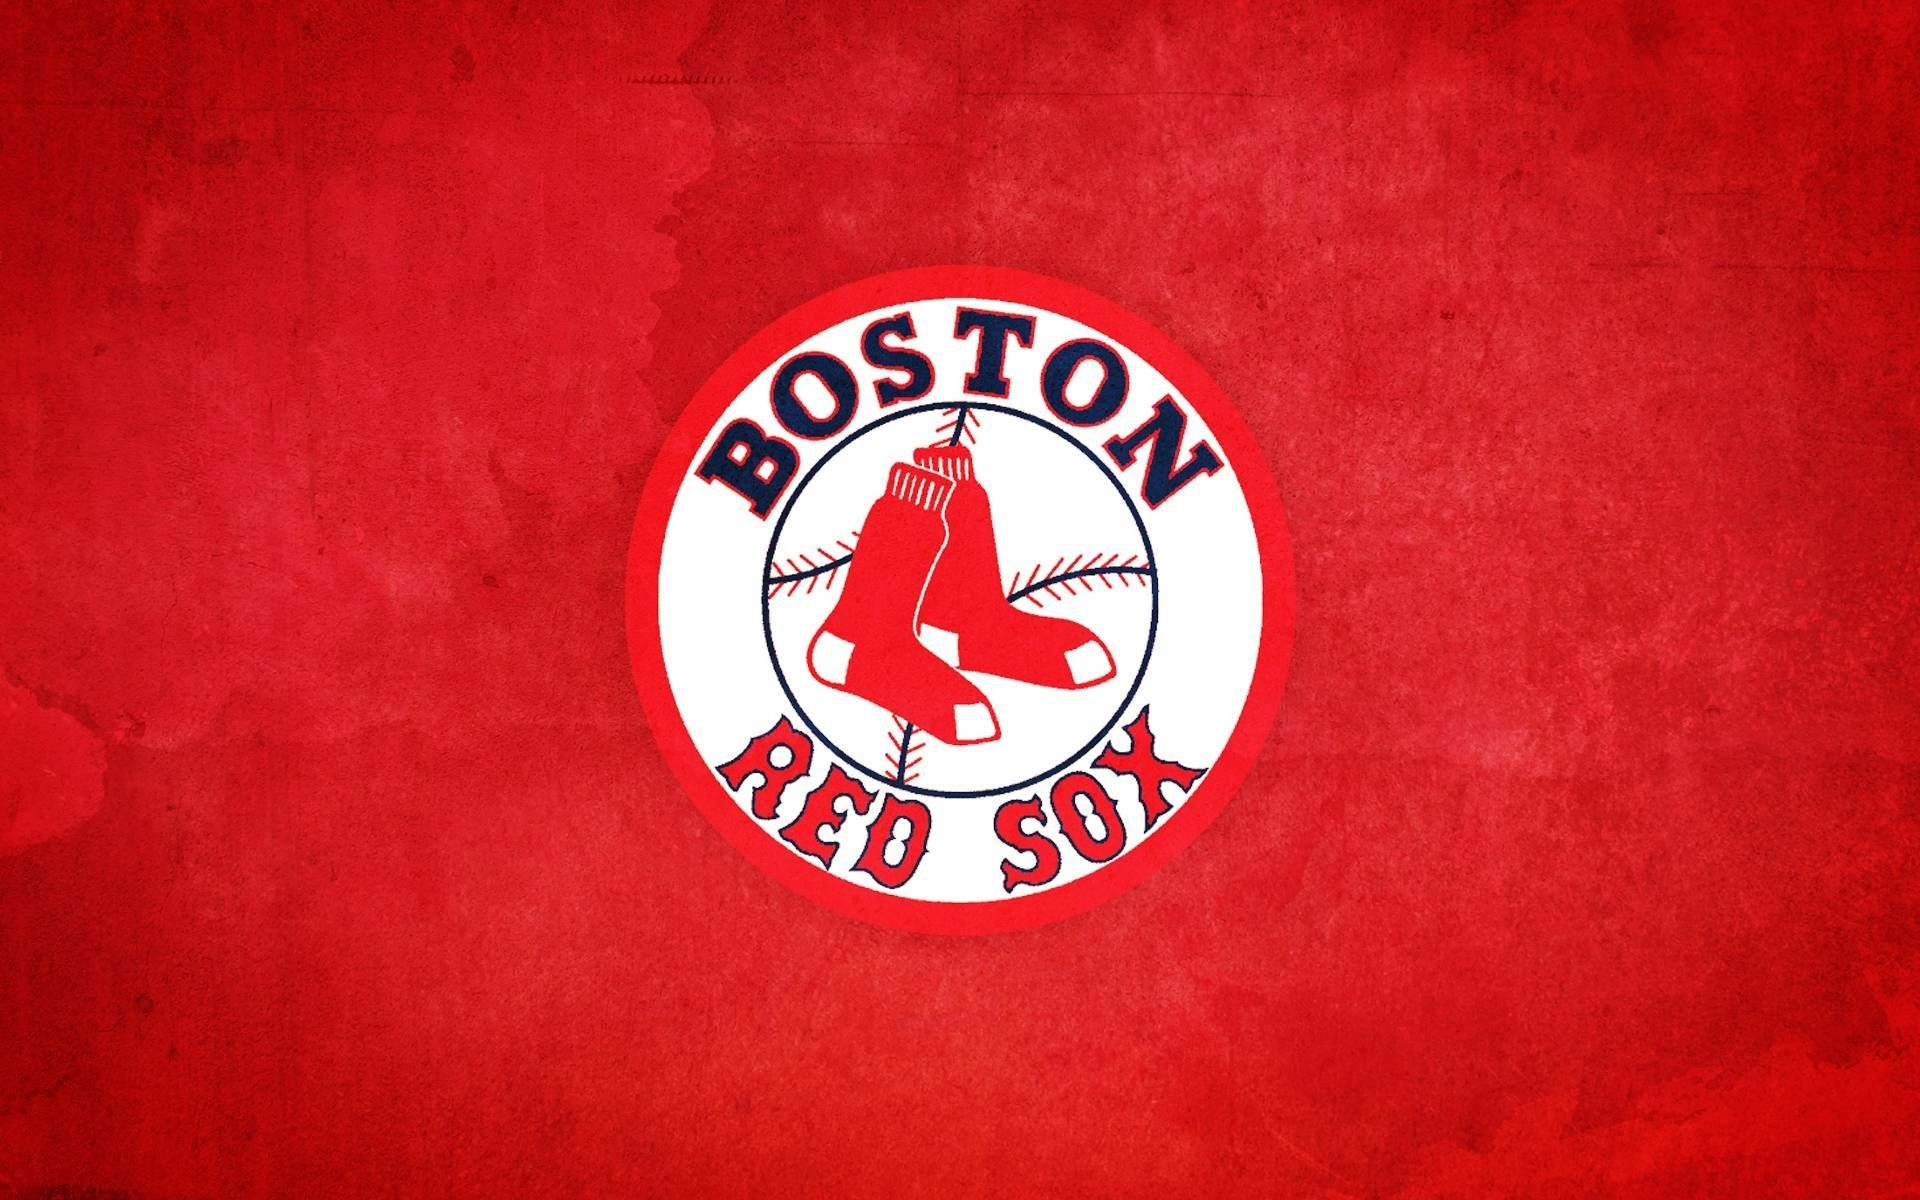 10 Best Boston Red Sox Desktop Wallpaper Full Hd 1080p For Pc Desktop In 2020 Red Sox Wallpaper Boston Red Sox Wallpaper Red Sox